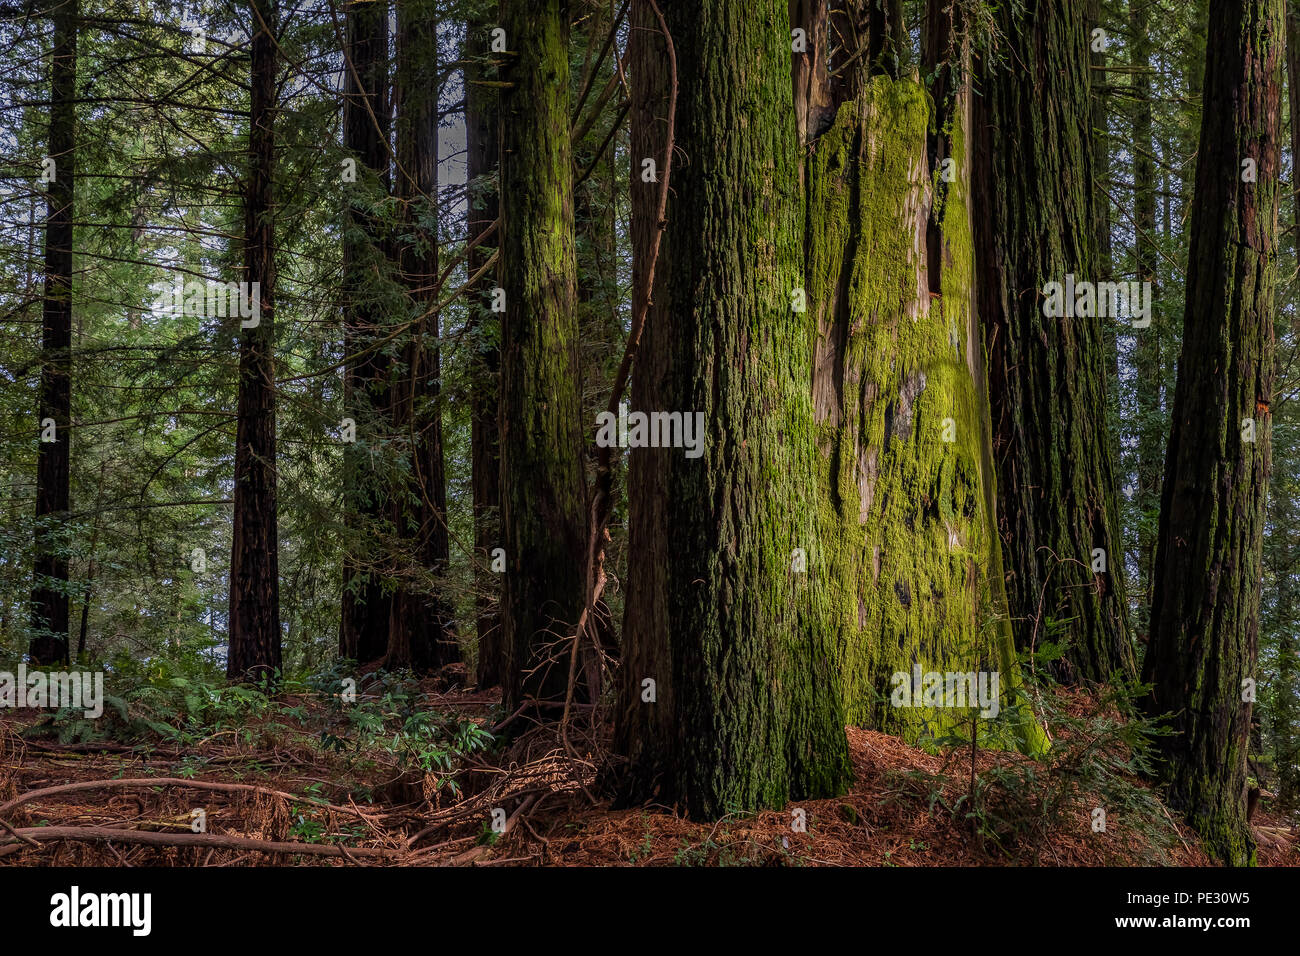 Sunbeam hitting a giant mossy sequoia tree trunk in the Redwoods Forest in California - Stock Image